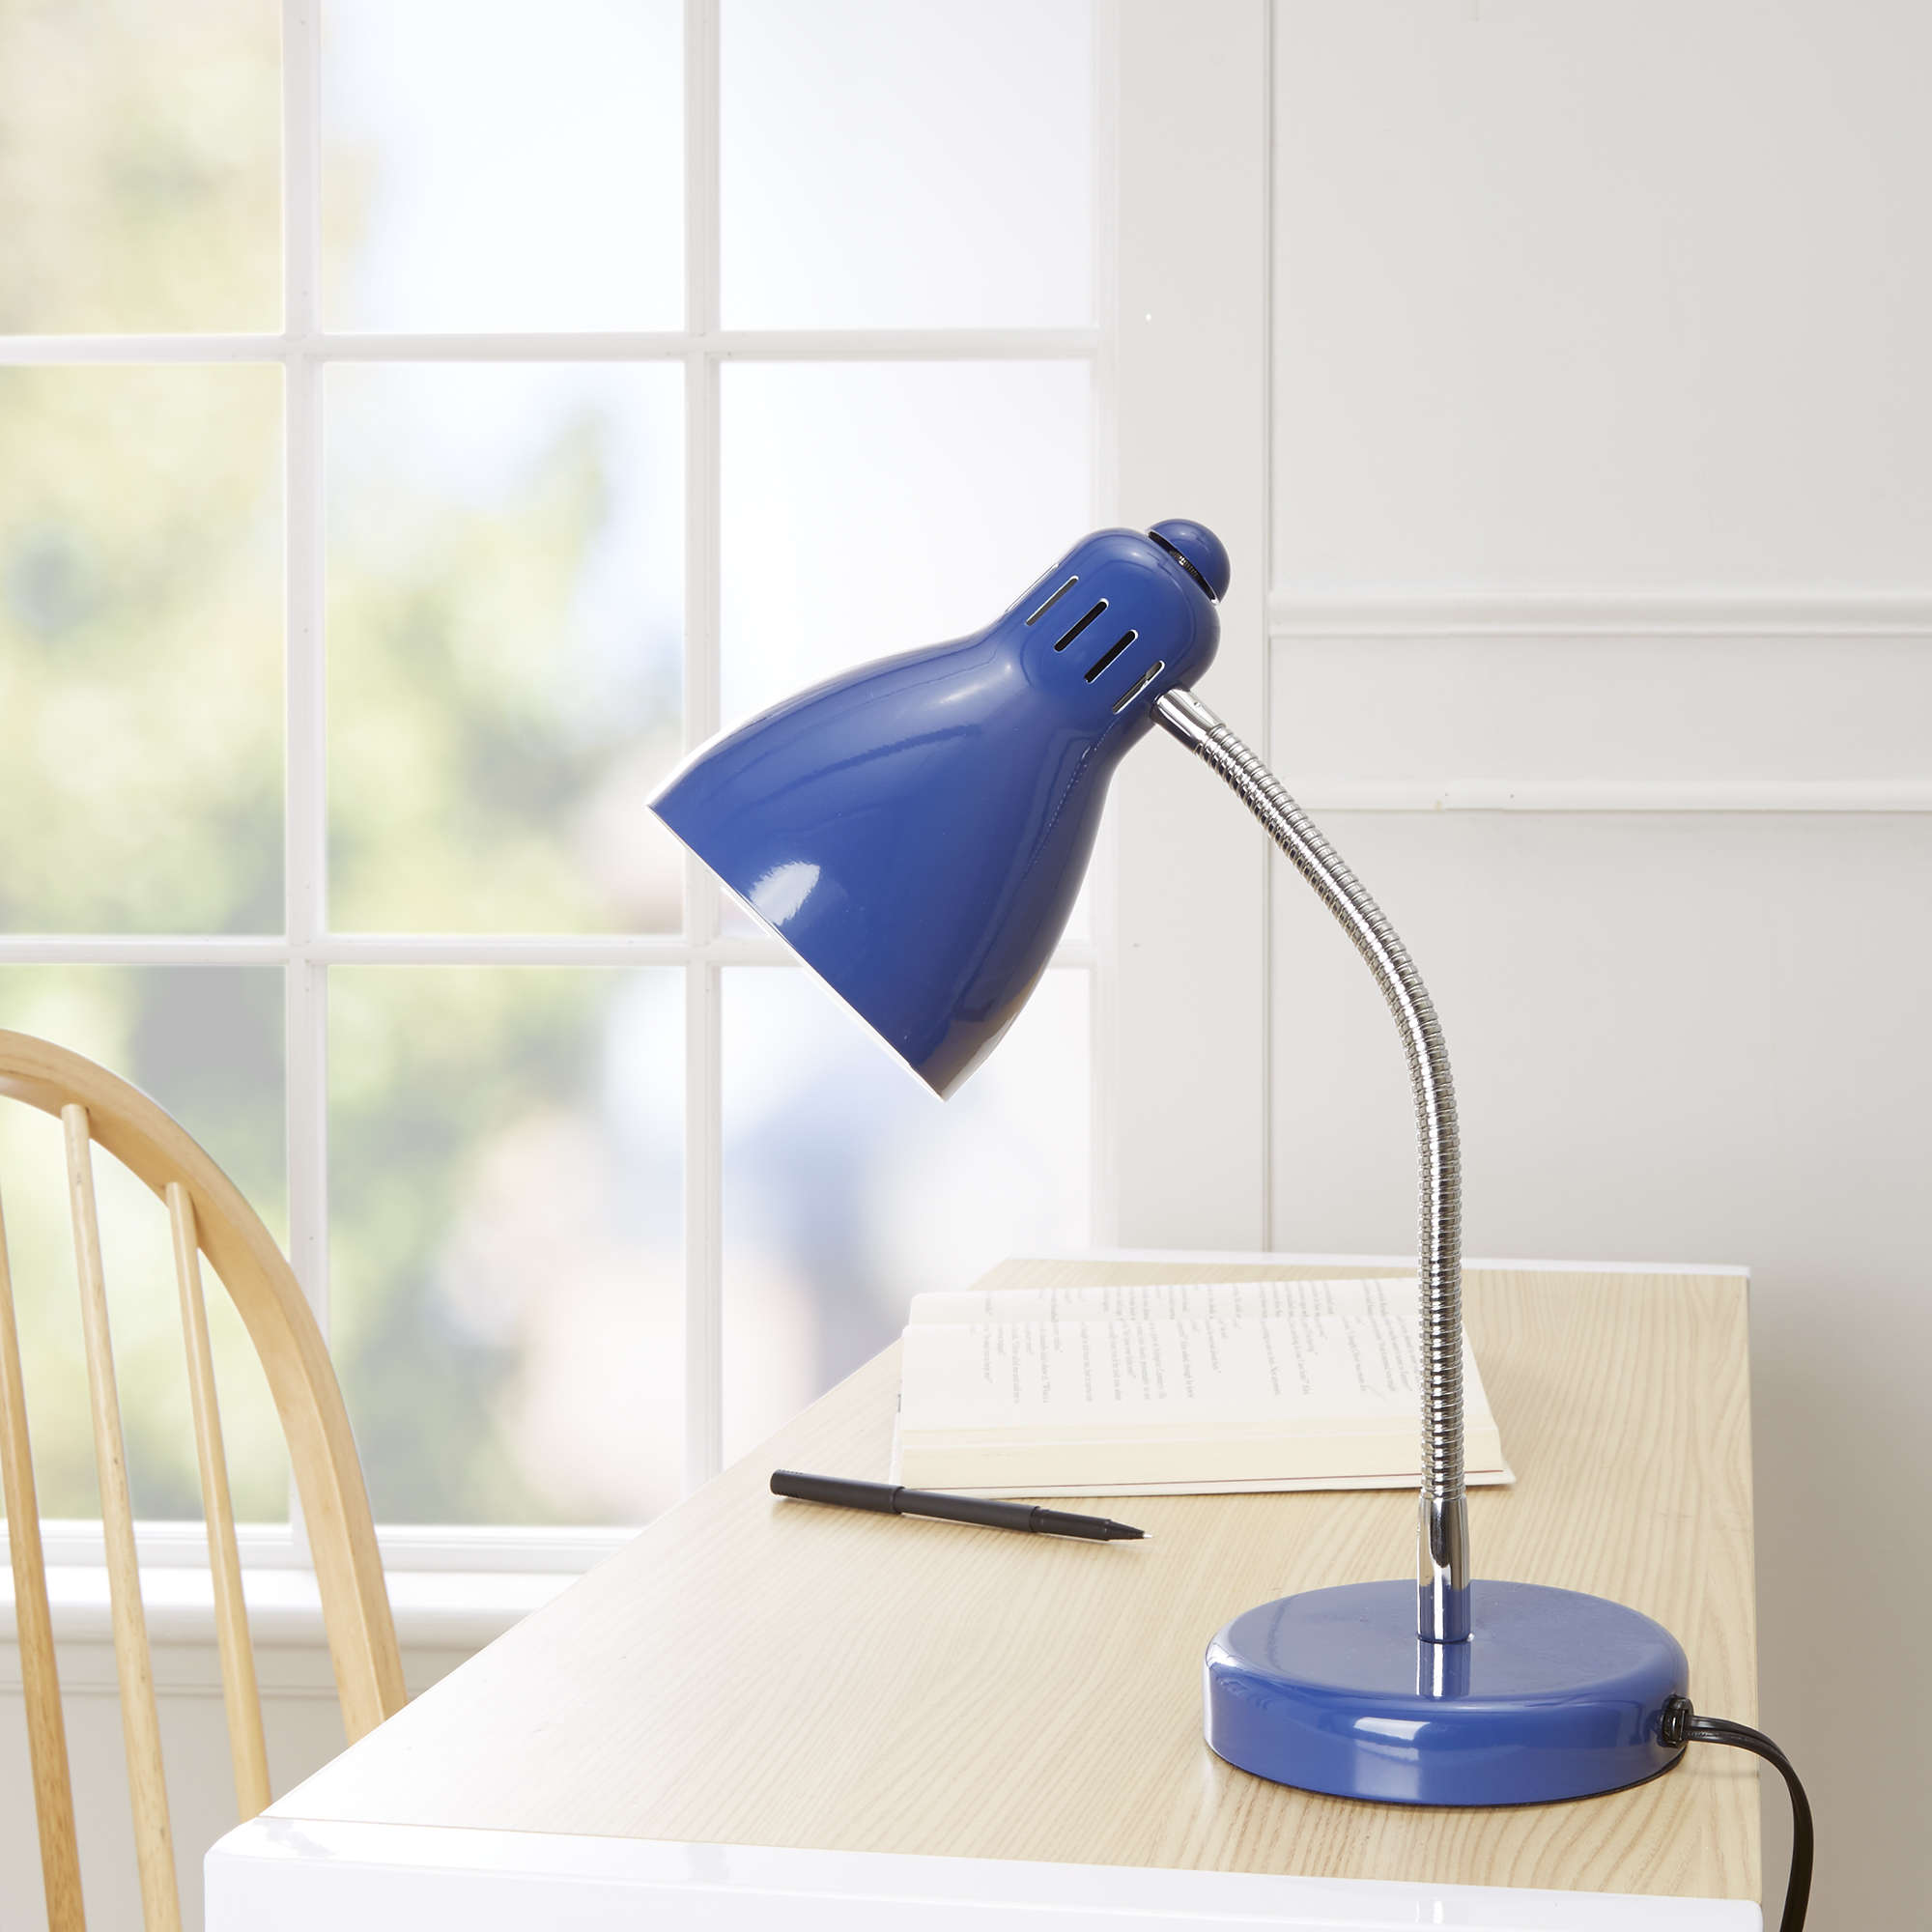 Mainstays Stadium Blue Desk Lamp, CFL Bulb Included